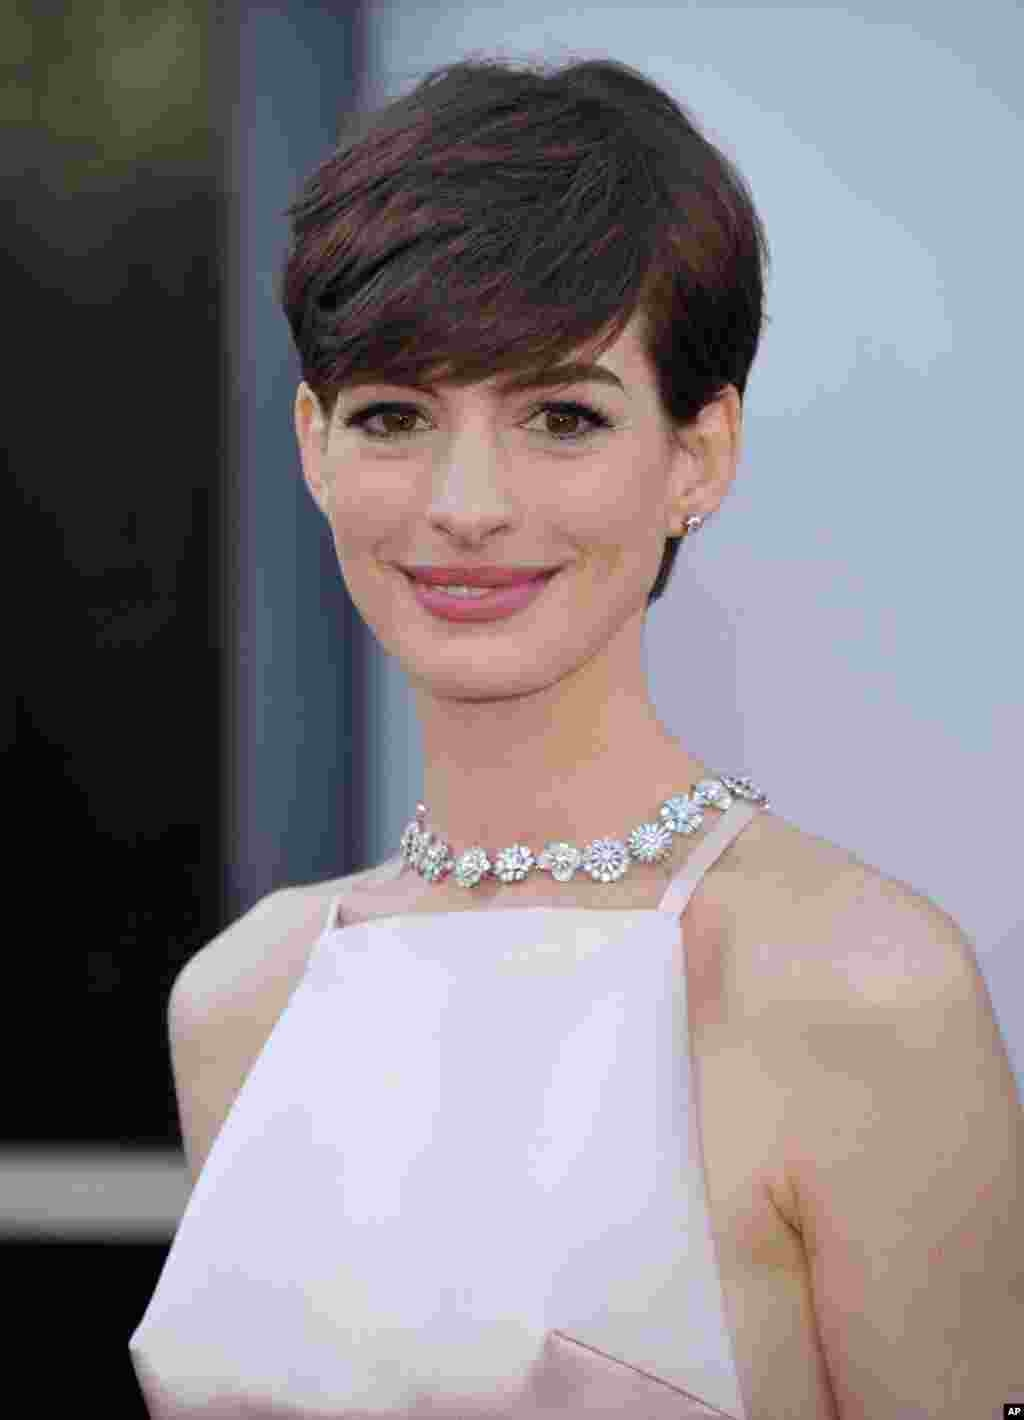 Actress Anne Hathaway arrives at the Oscars at the Dolby Theatre, Feb. 24, 2013, in Los Angeles.